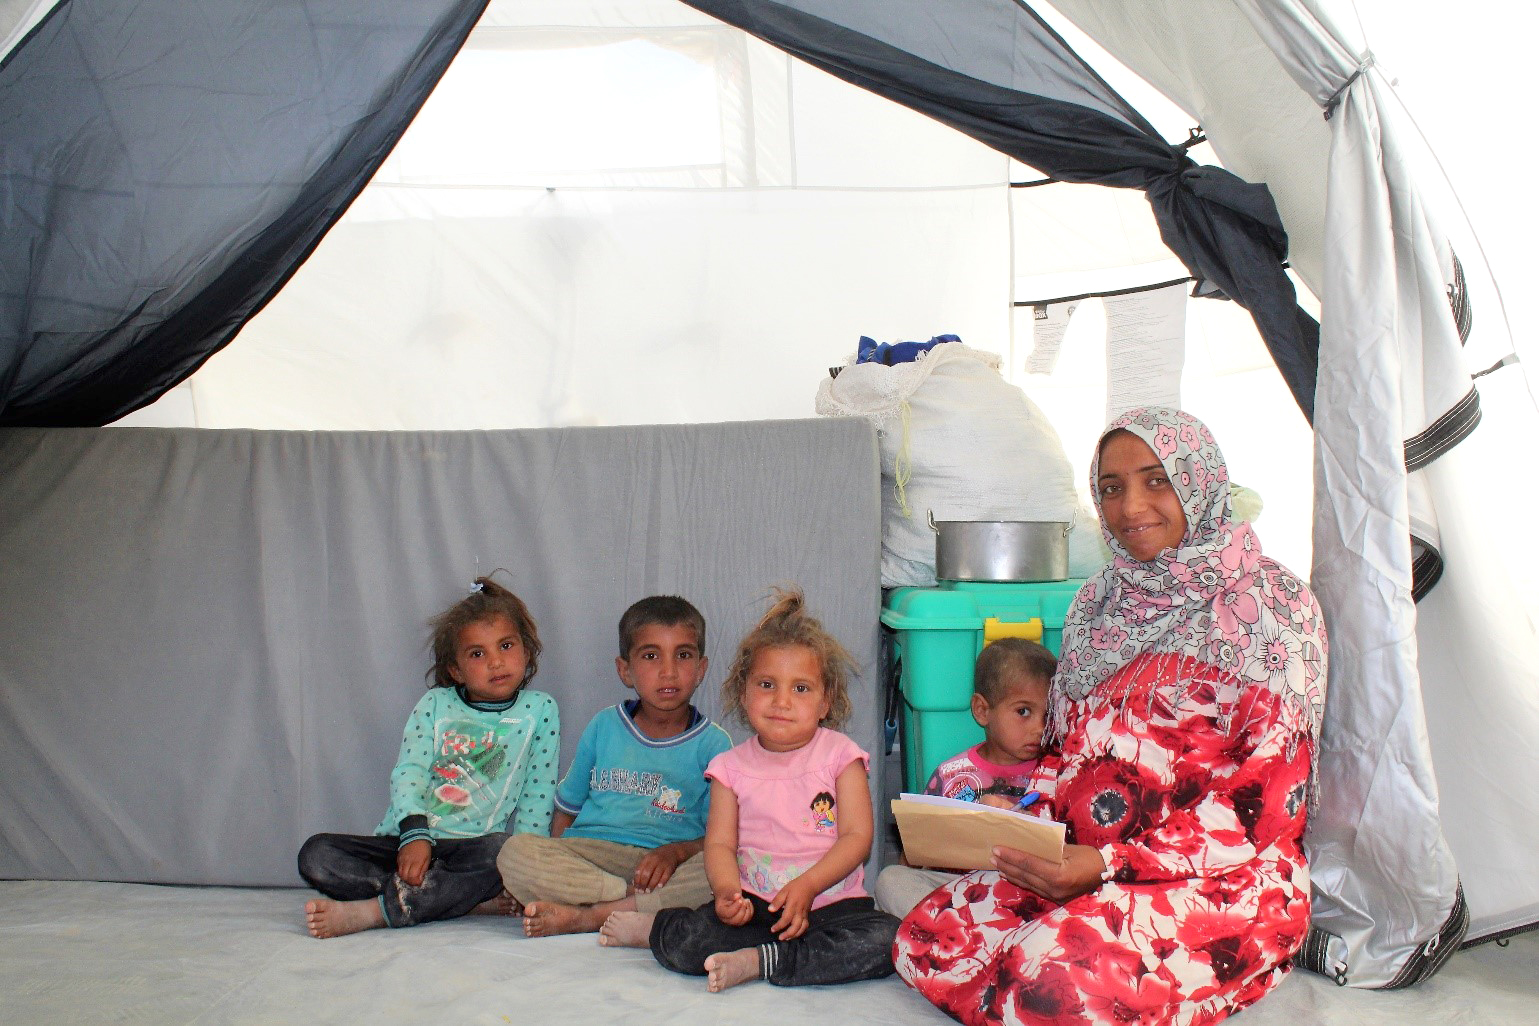 Ali and her 4 children in their tent